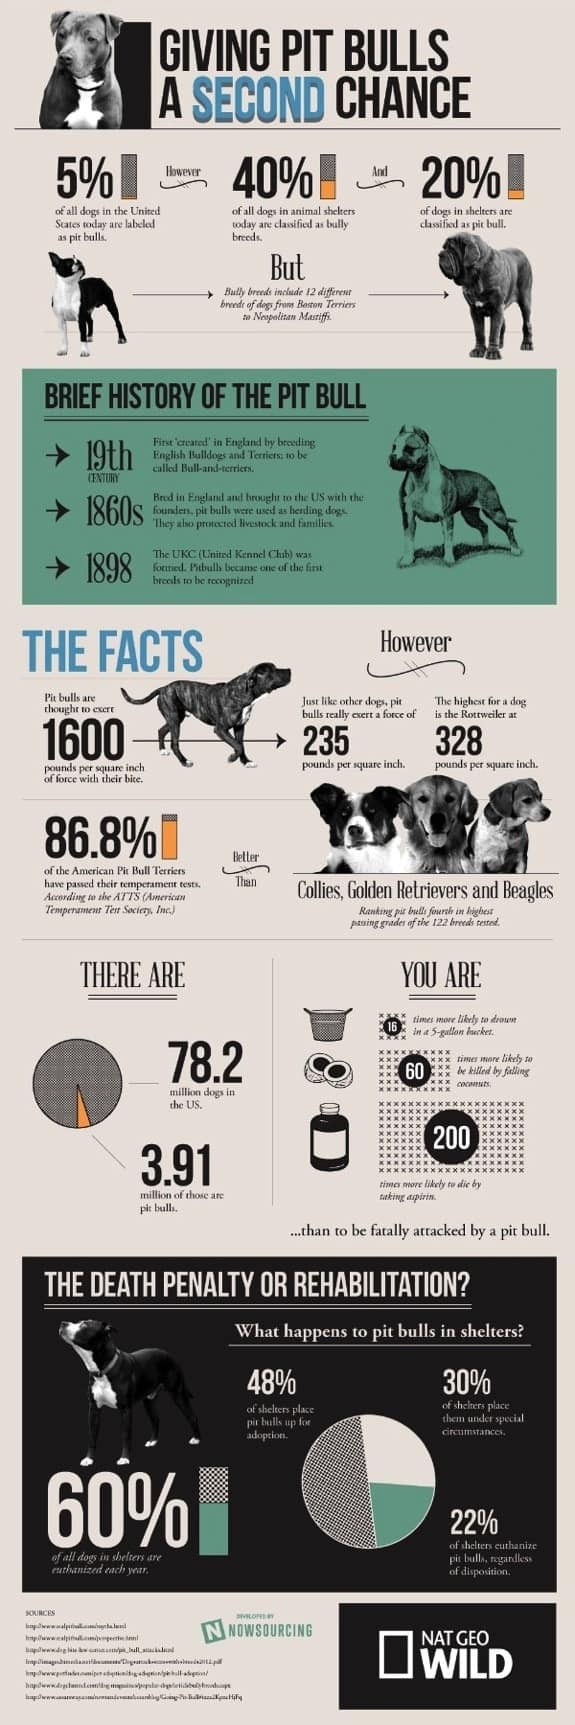 Displaying images for vicious dog breeds list - Pit Bull Facts Infographic